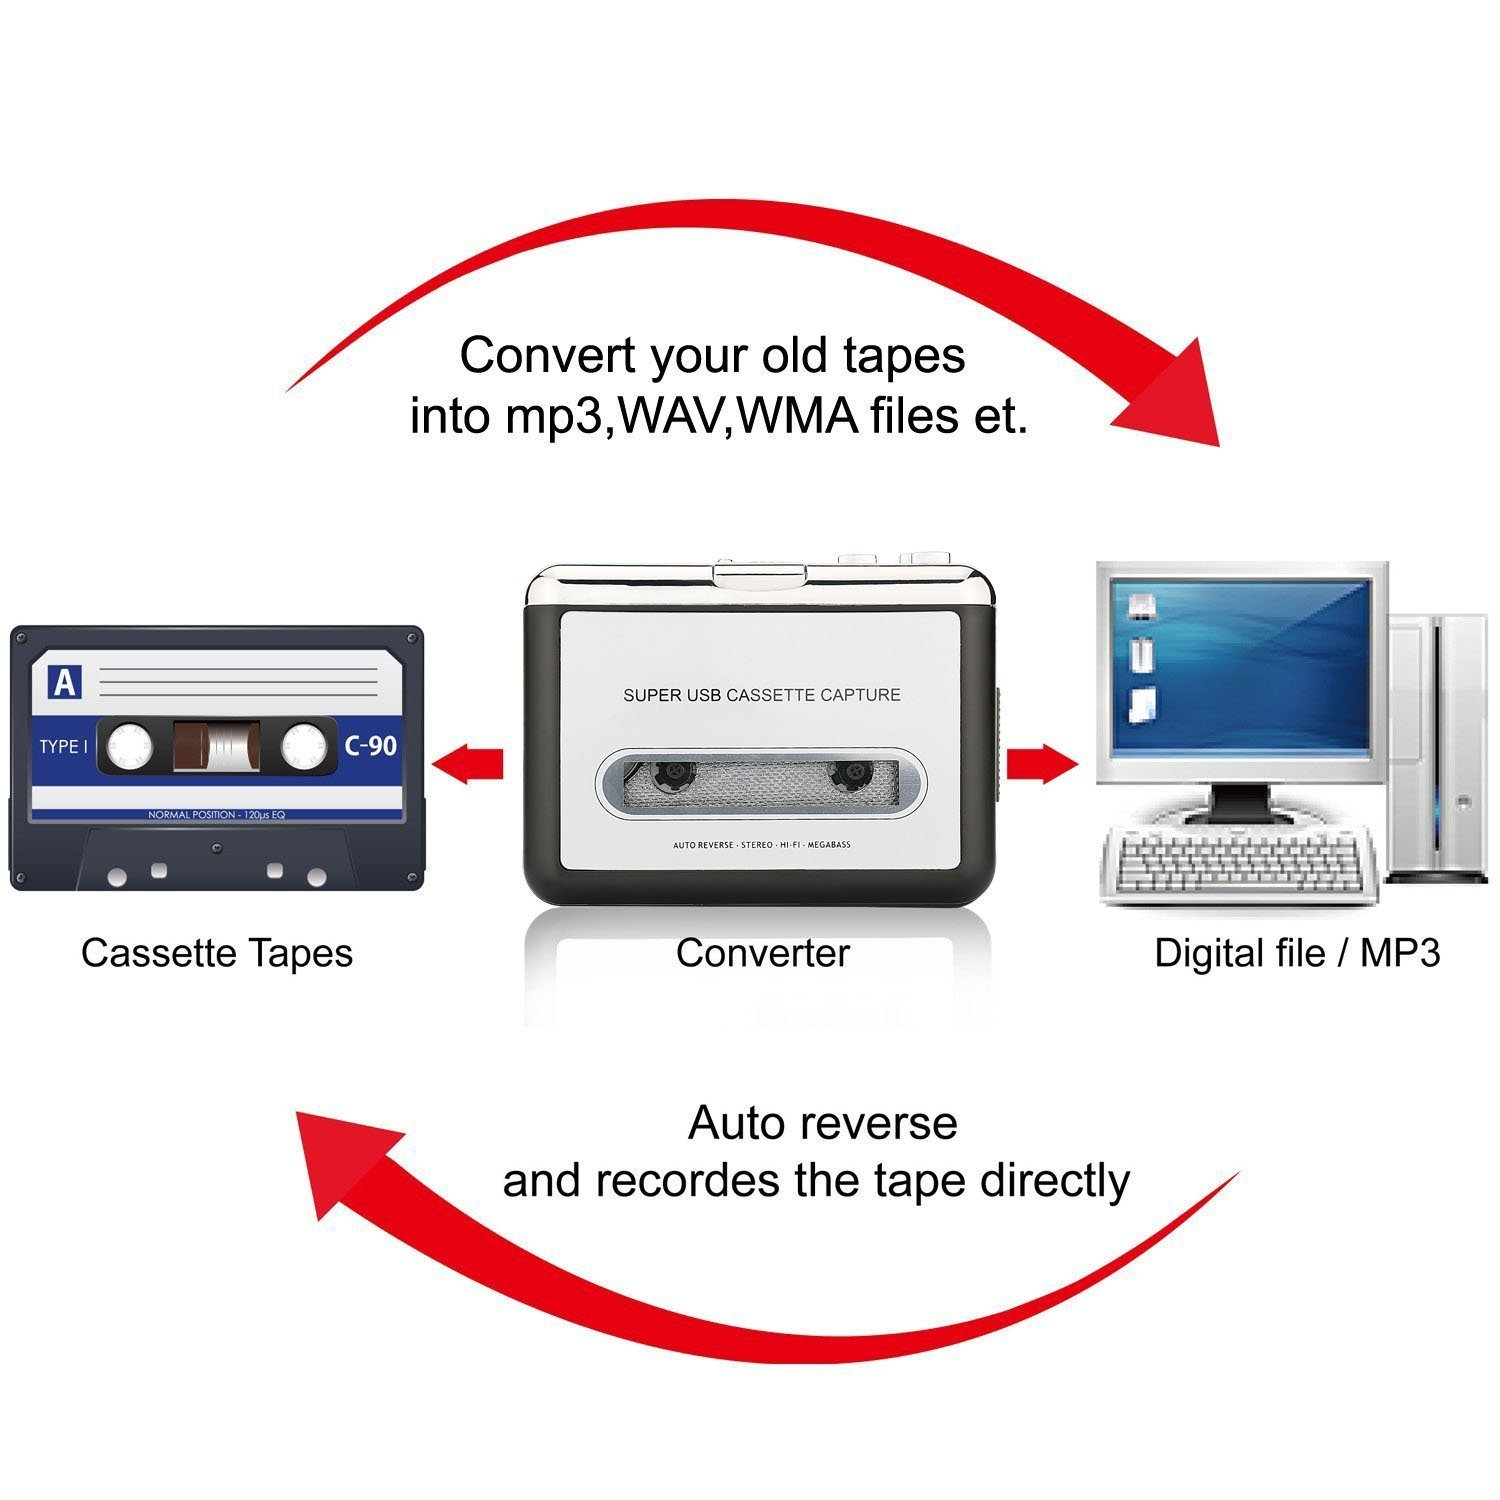 Best and most practical retro cassette player - Portable tape player Capture MP3 music music via USB - Compatible with laptop and personal computer - Convert Walkman cassette to iPod format by Hqdz (Image #6)